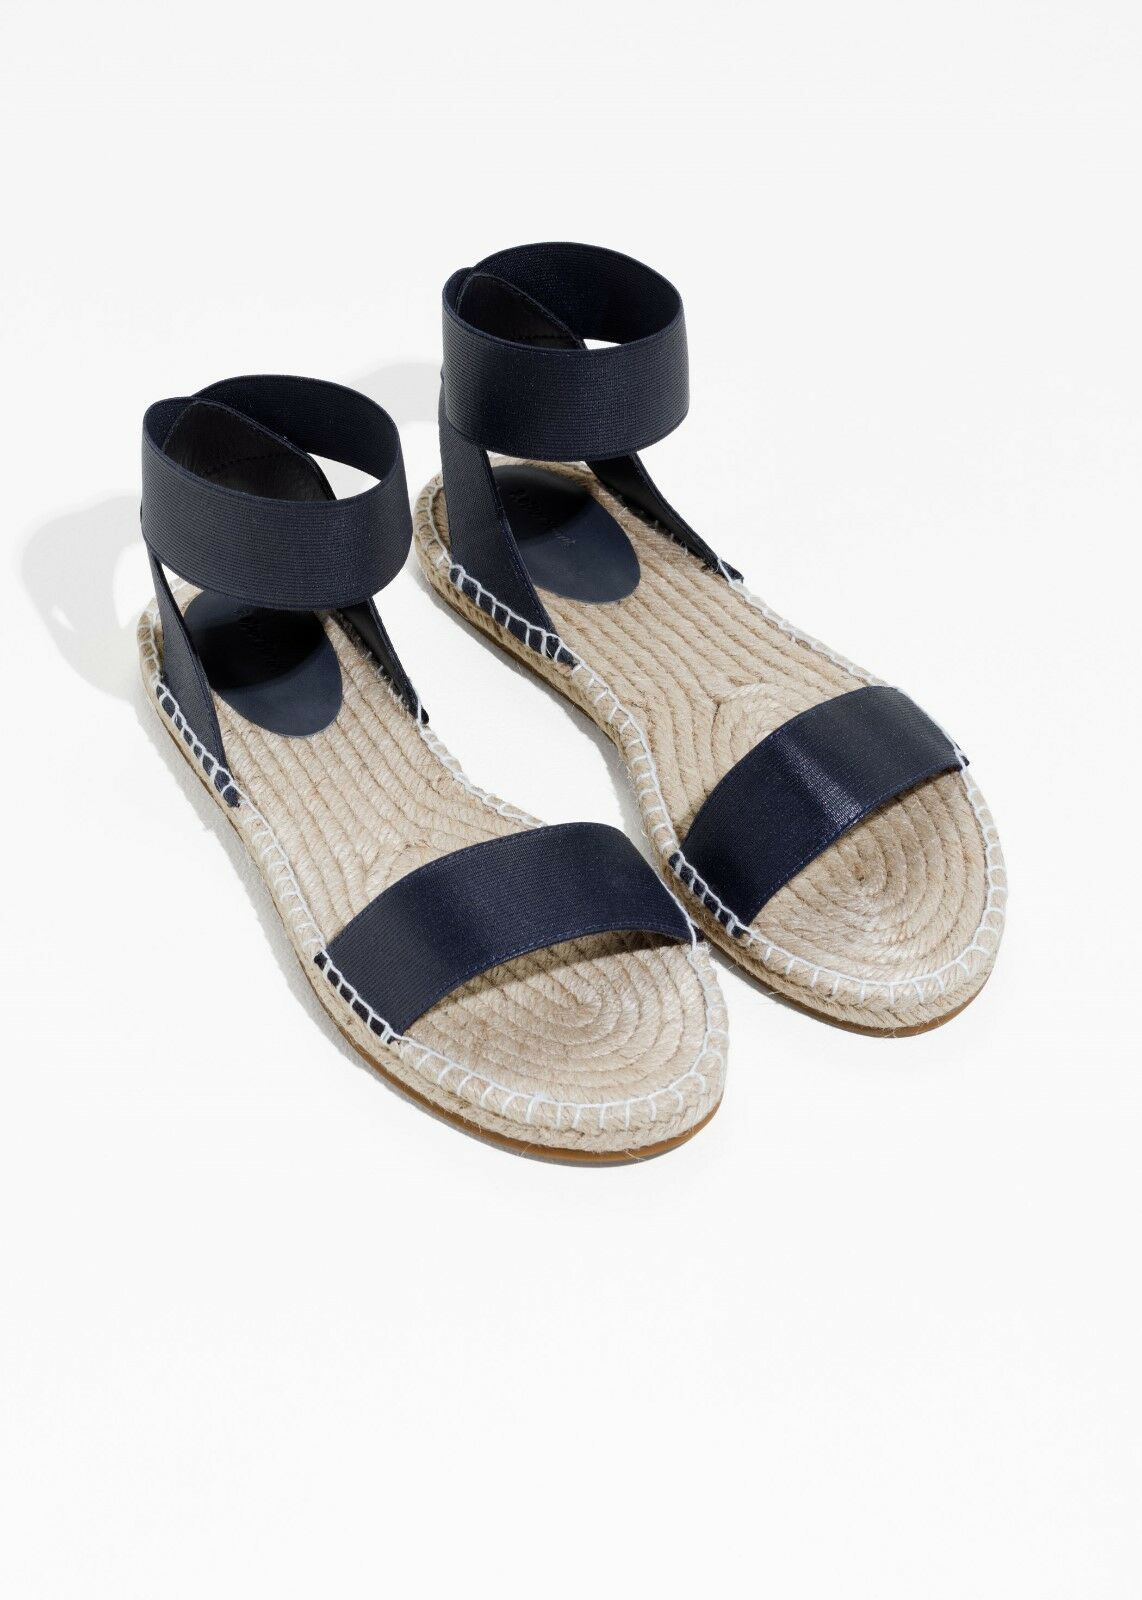 & Other Stories Two-Strap Sandals - Designed in Stockholm - Navy - EU 41